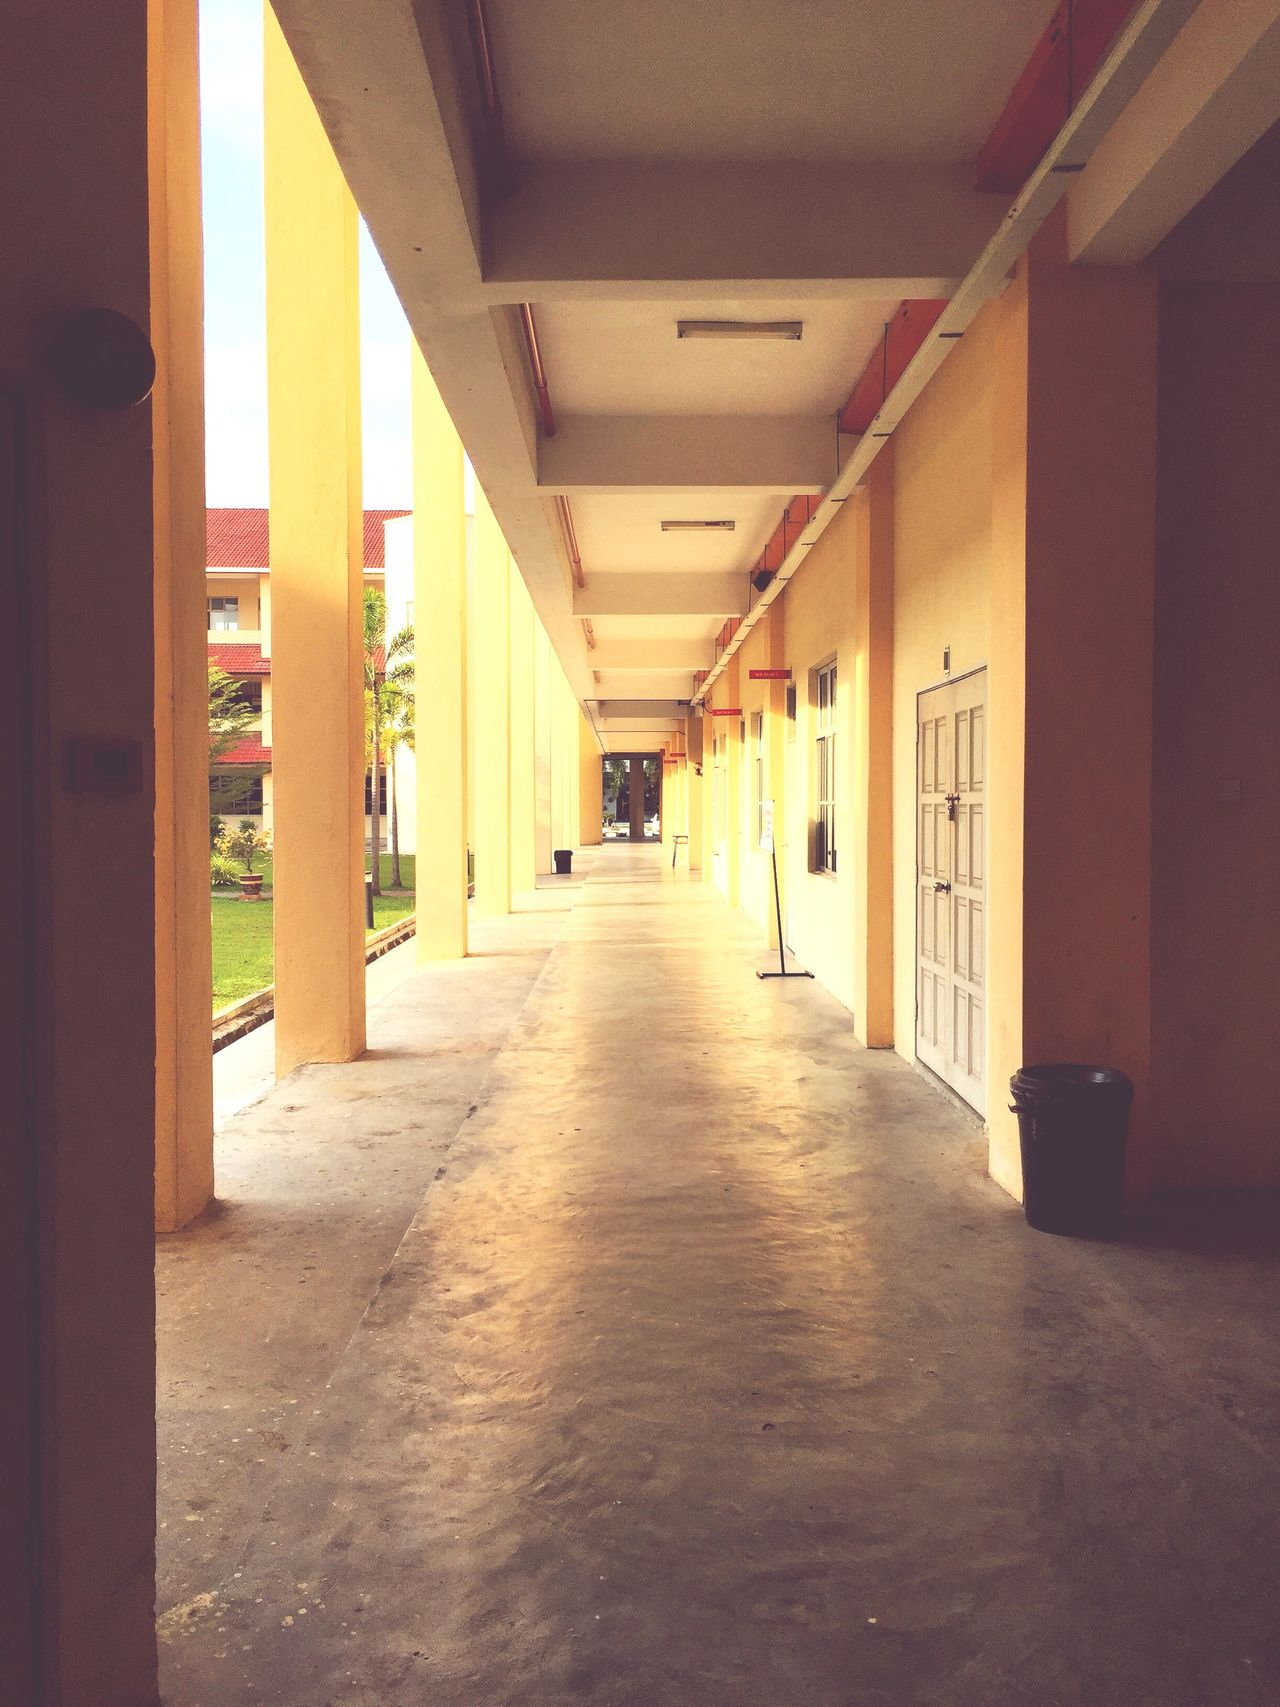 The Way Forward Architecture Built Structure Indoors  Day Passageway No People Passage Perspective Photography Perspective Corridor Architecture Morning View Morning Light Outdoors Building Exterior Buildings Architecture Building Building Structures Way Walkway